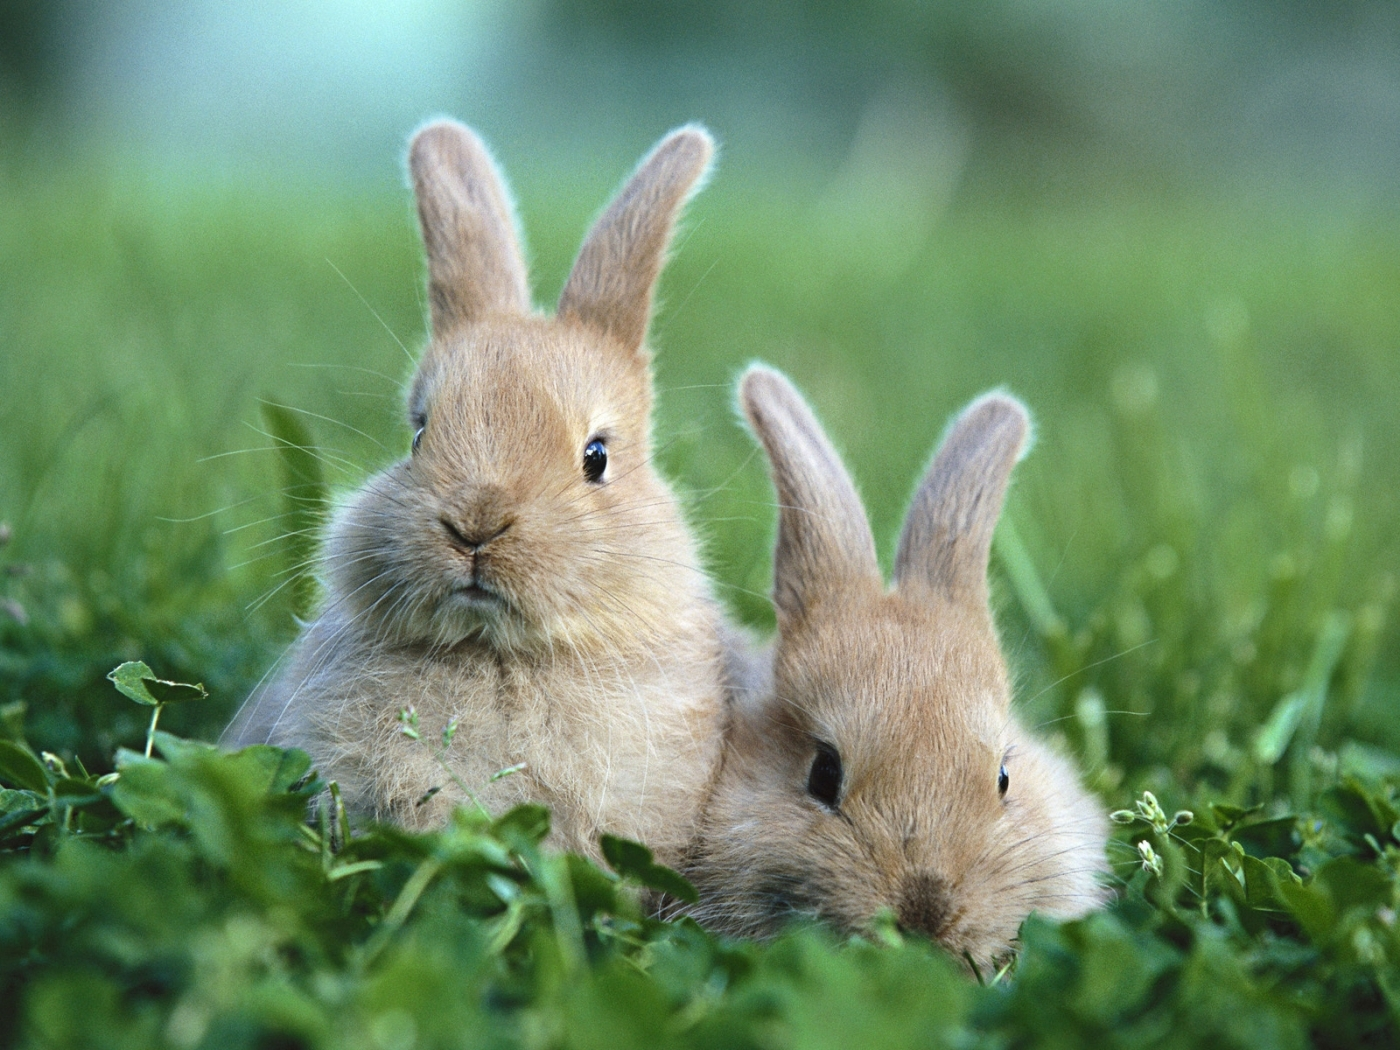 50232 download wallpaper Animals, Rabbits screensavers and pictures for free